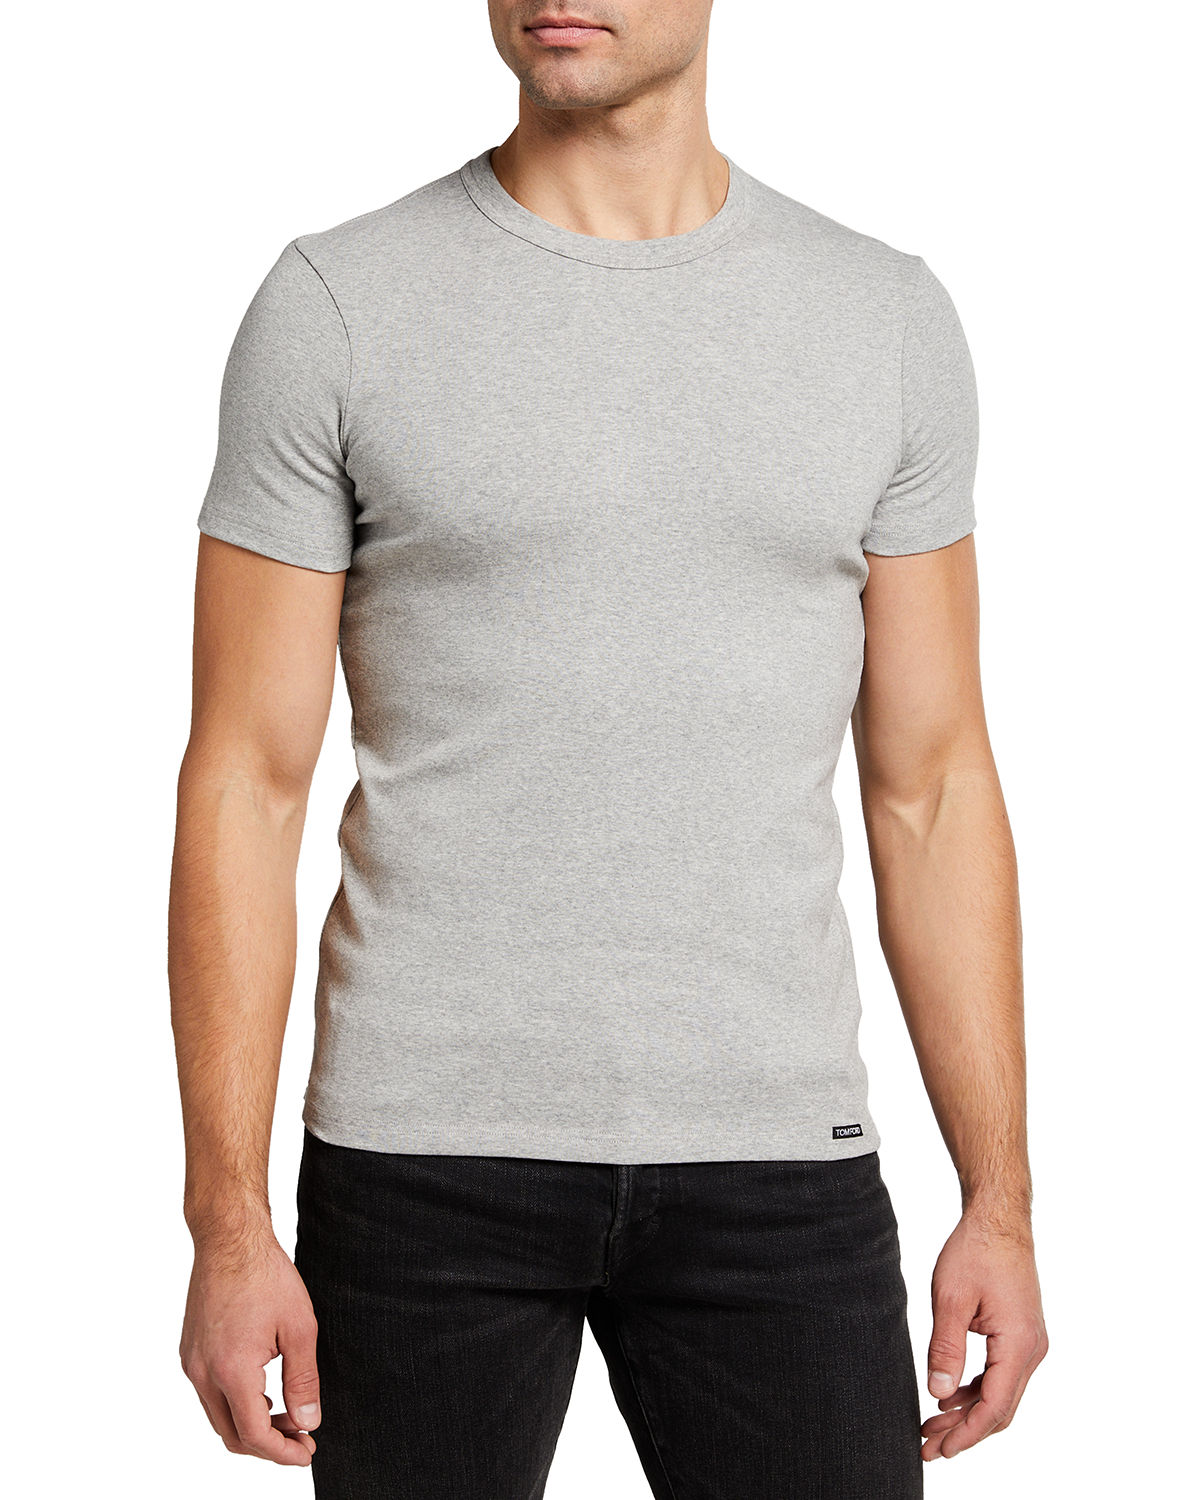 Tom Ford MEN'S SOLID STRETCH JERSEY T-SHIRT